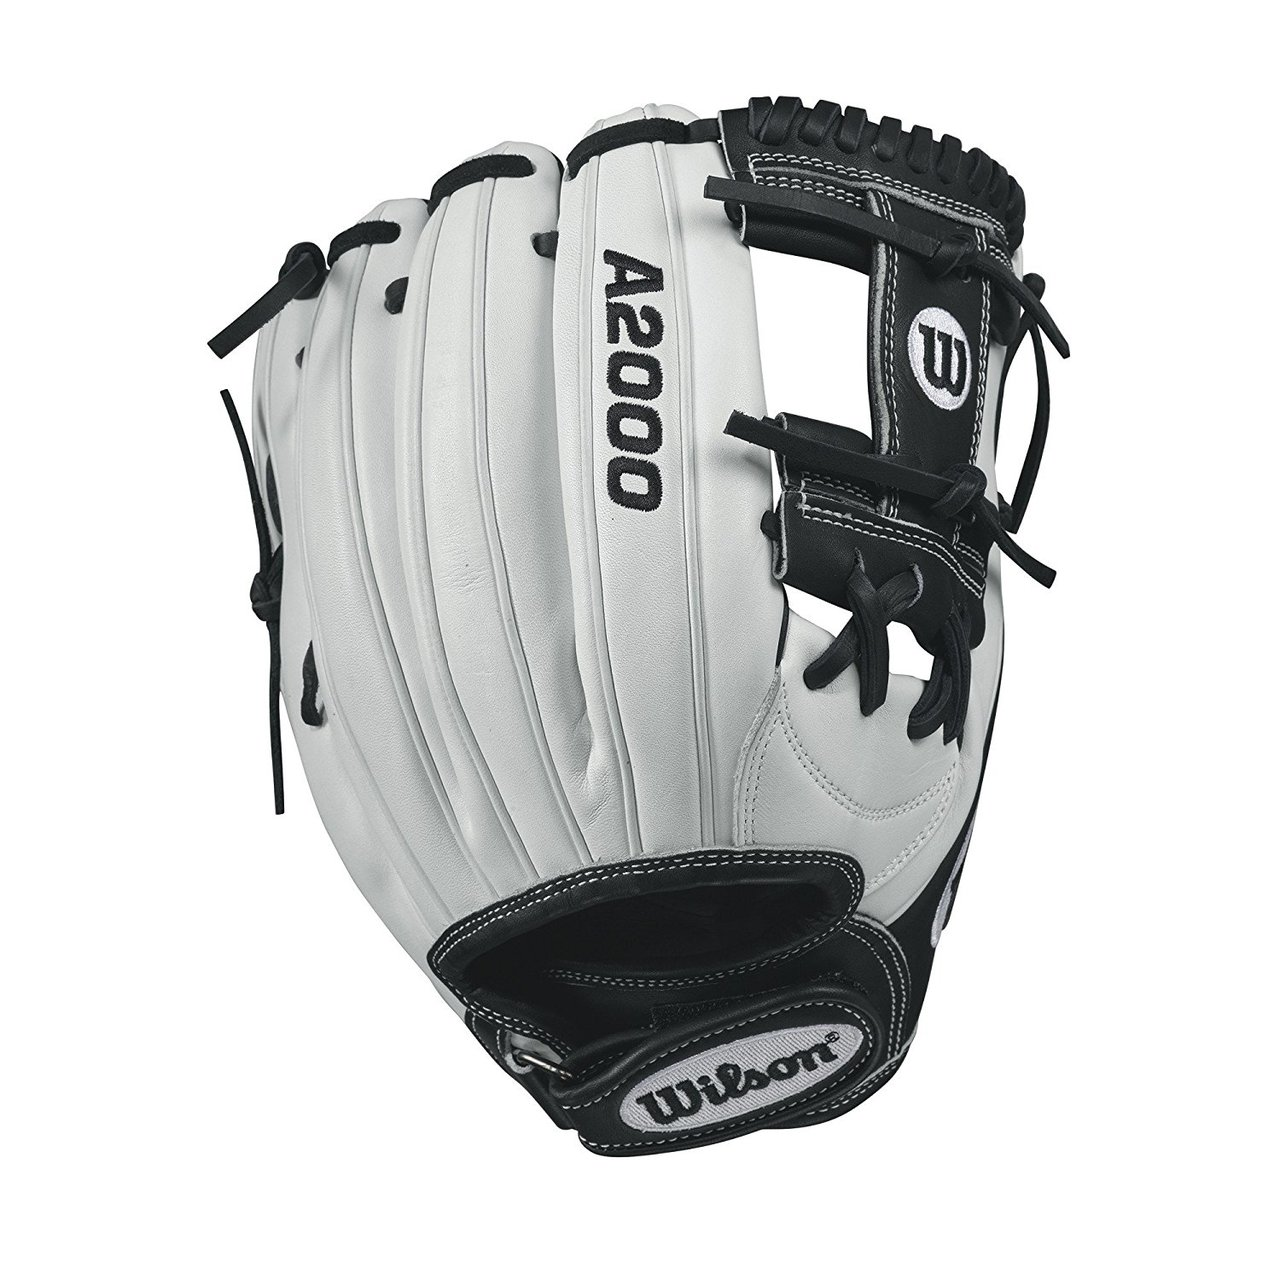 wilson-a2000-series-11-75-inch-wta20rf171175-fastpitch-softball-glove A20RF171175-RightHandThrow  887768499525 Fastpitch-specific WTA20RF171175 New comfort Velcro wrist closure for a secure and